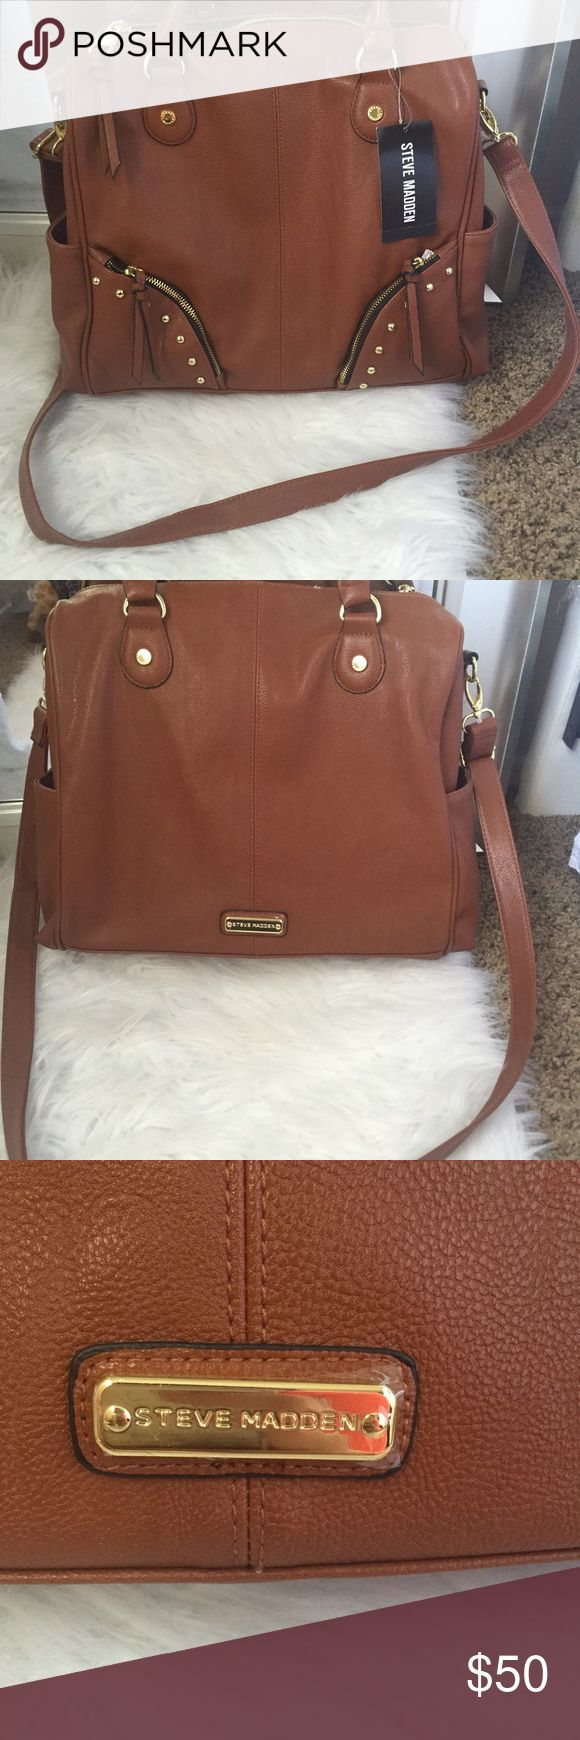 Steve Madden Purse   New! Brand new purse! It has a removable shoulder strap so you can wear it however you want. Price is firm! Steve Madden Bags Shoulder Bags